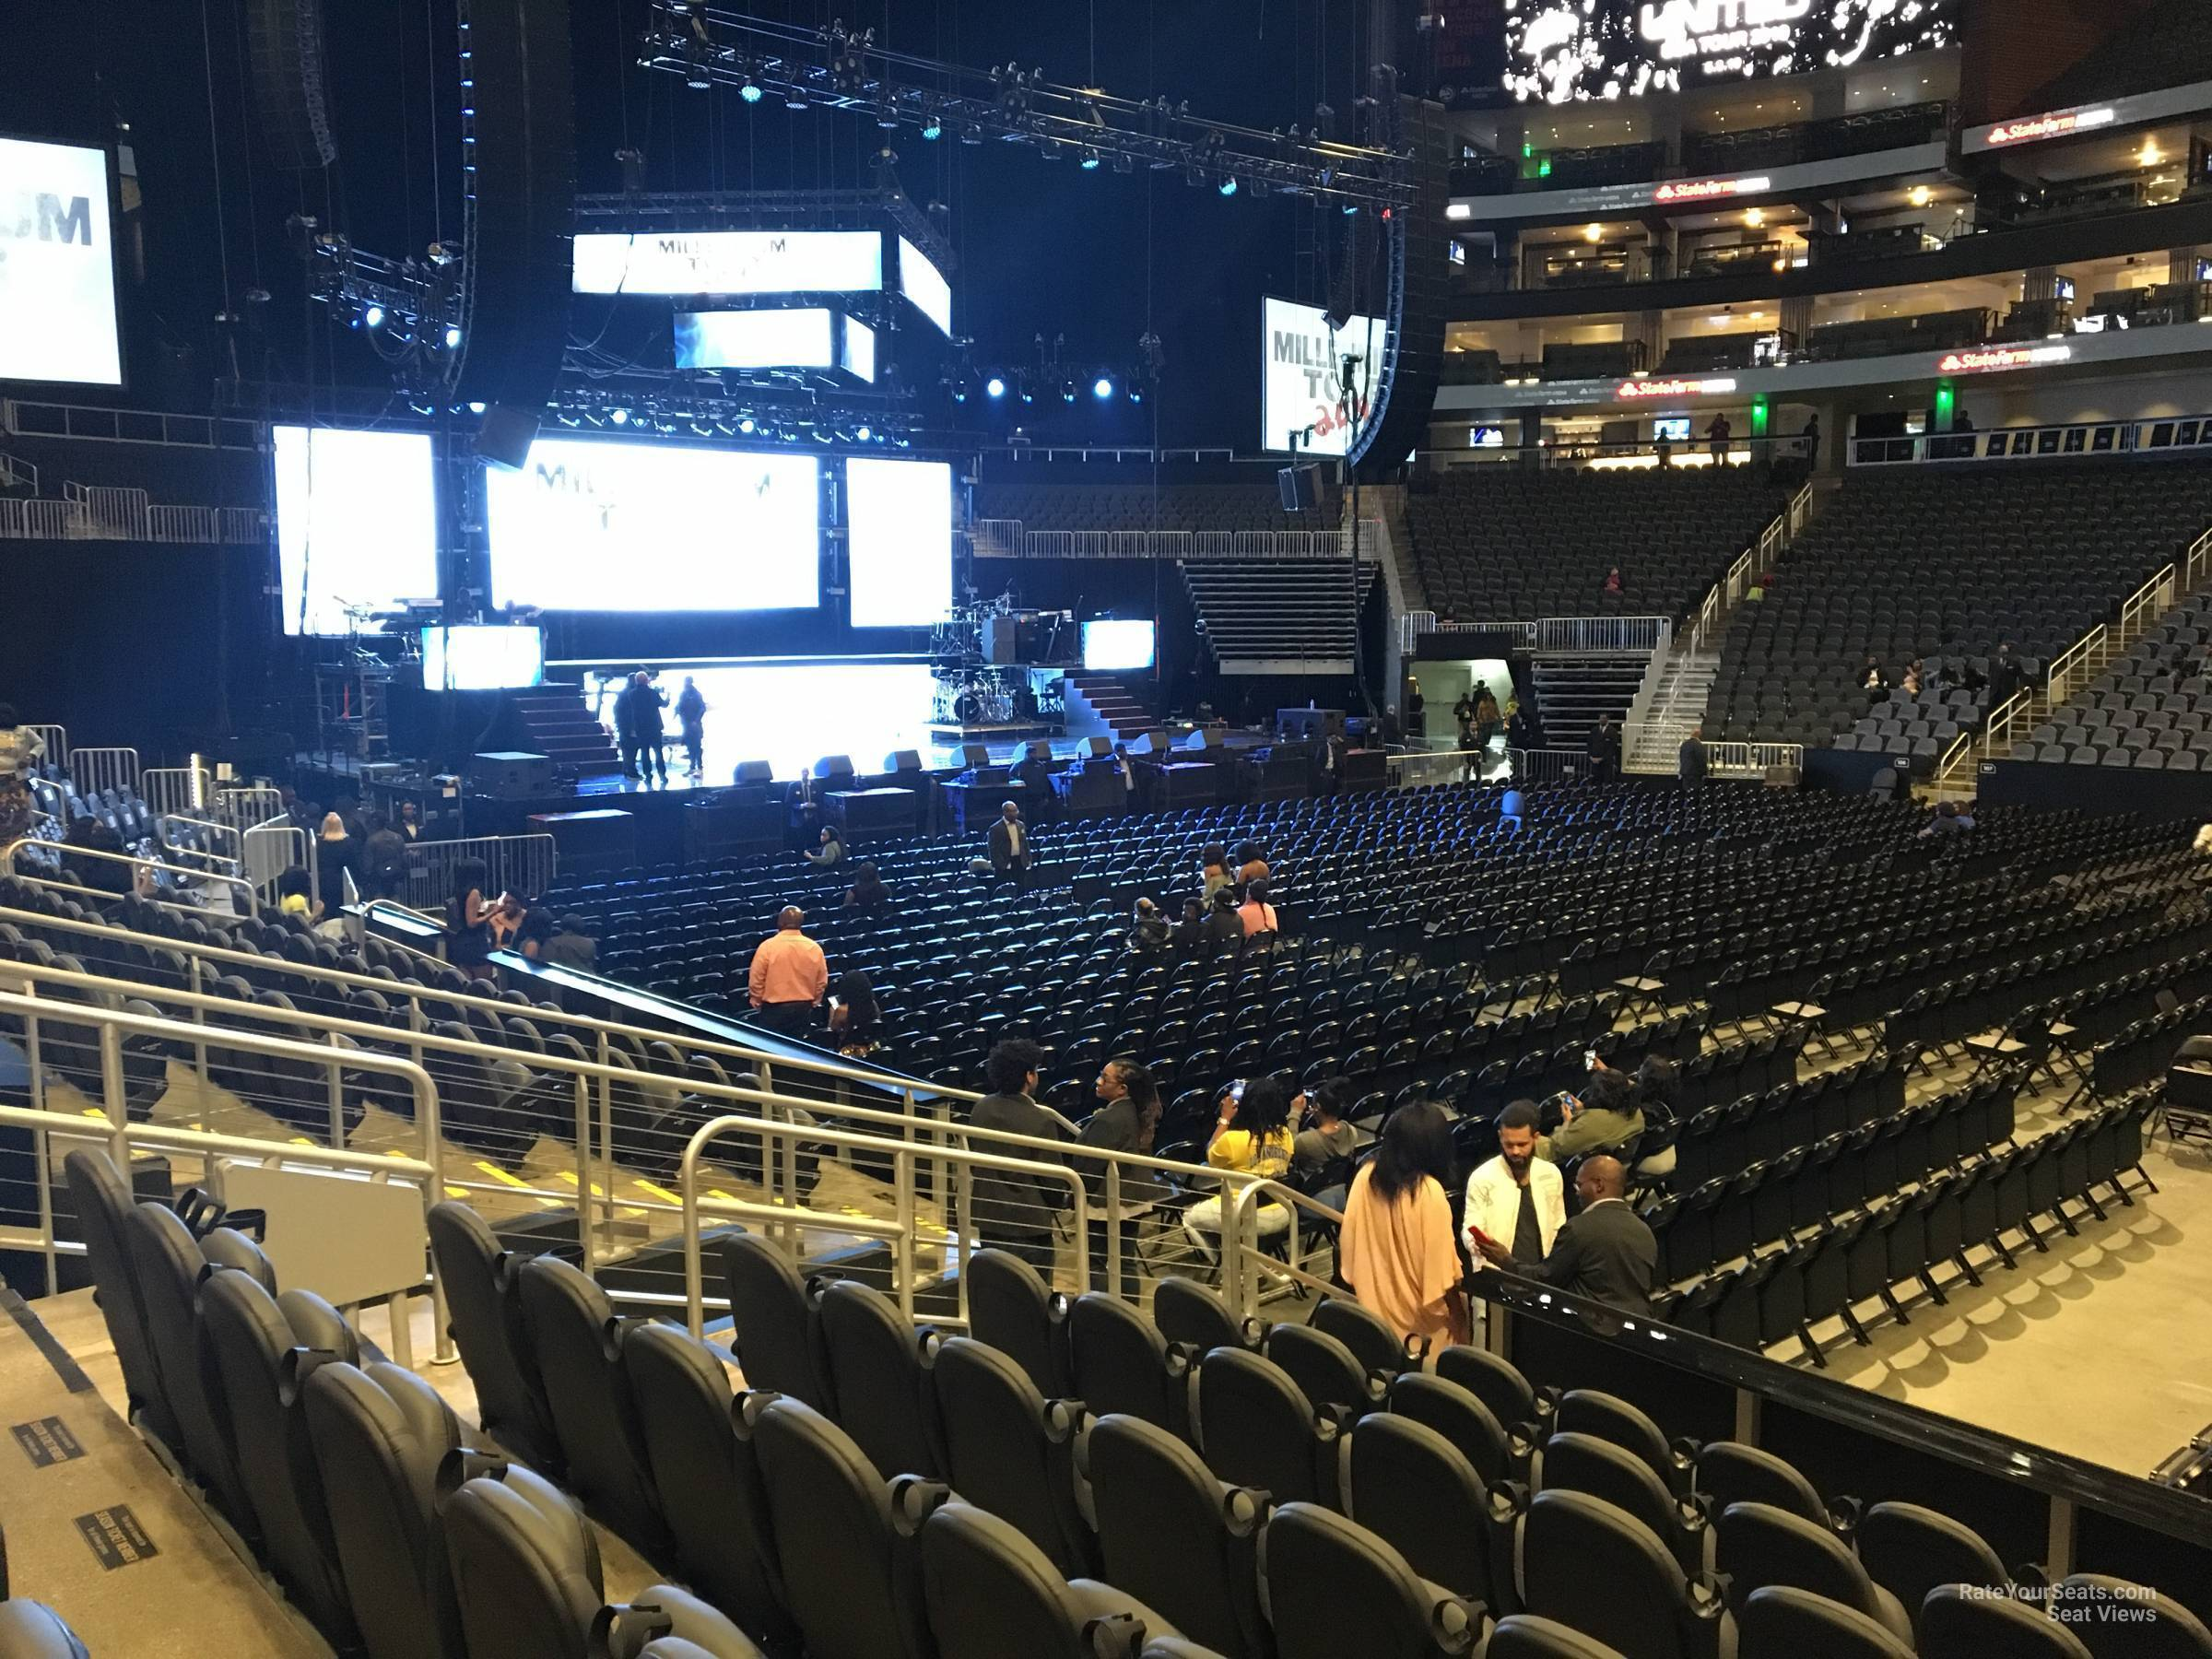 State Farm Arena Section 119 Concert Seating Rateyourseats Com